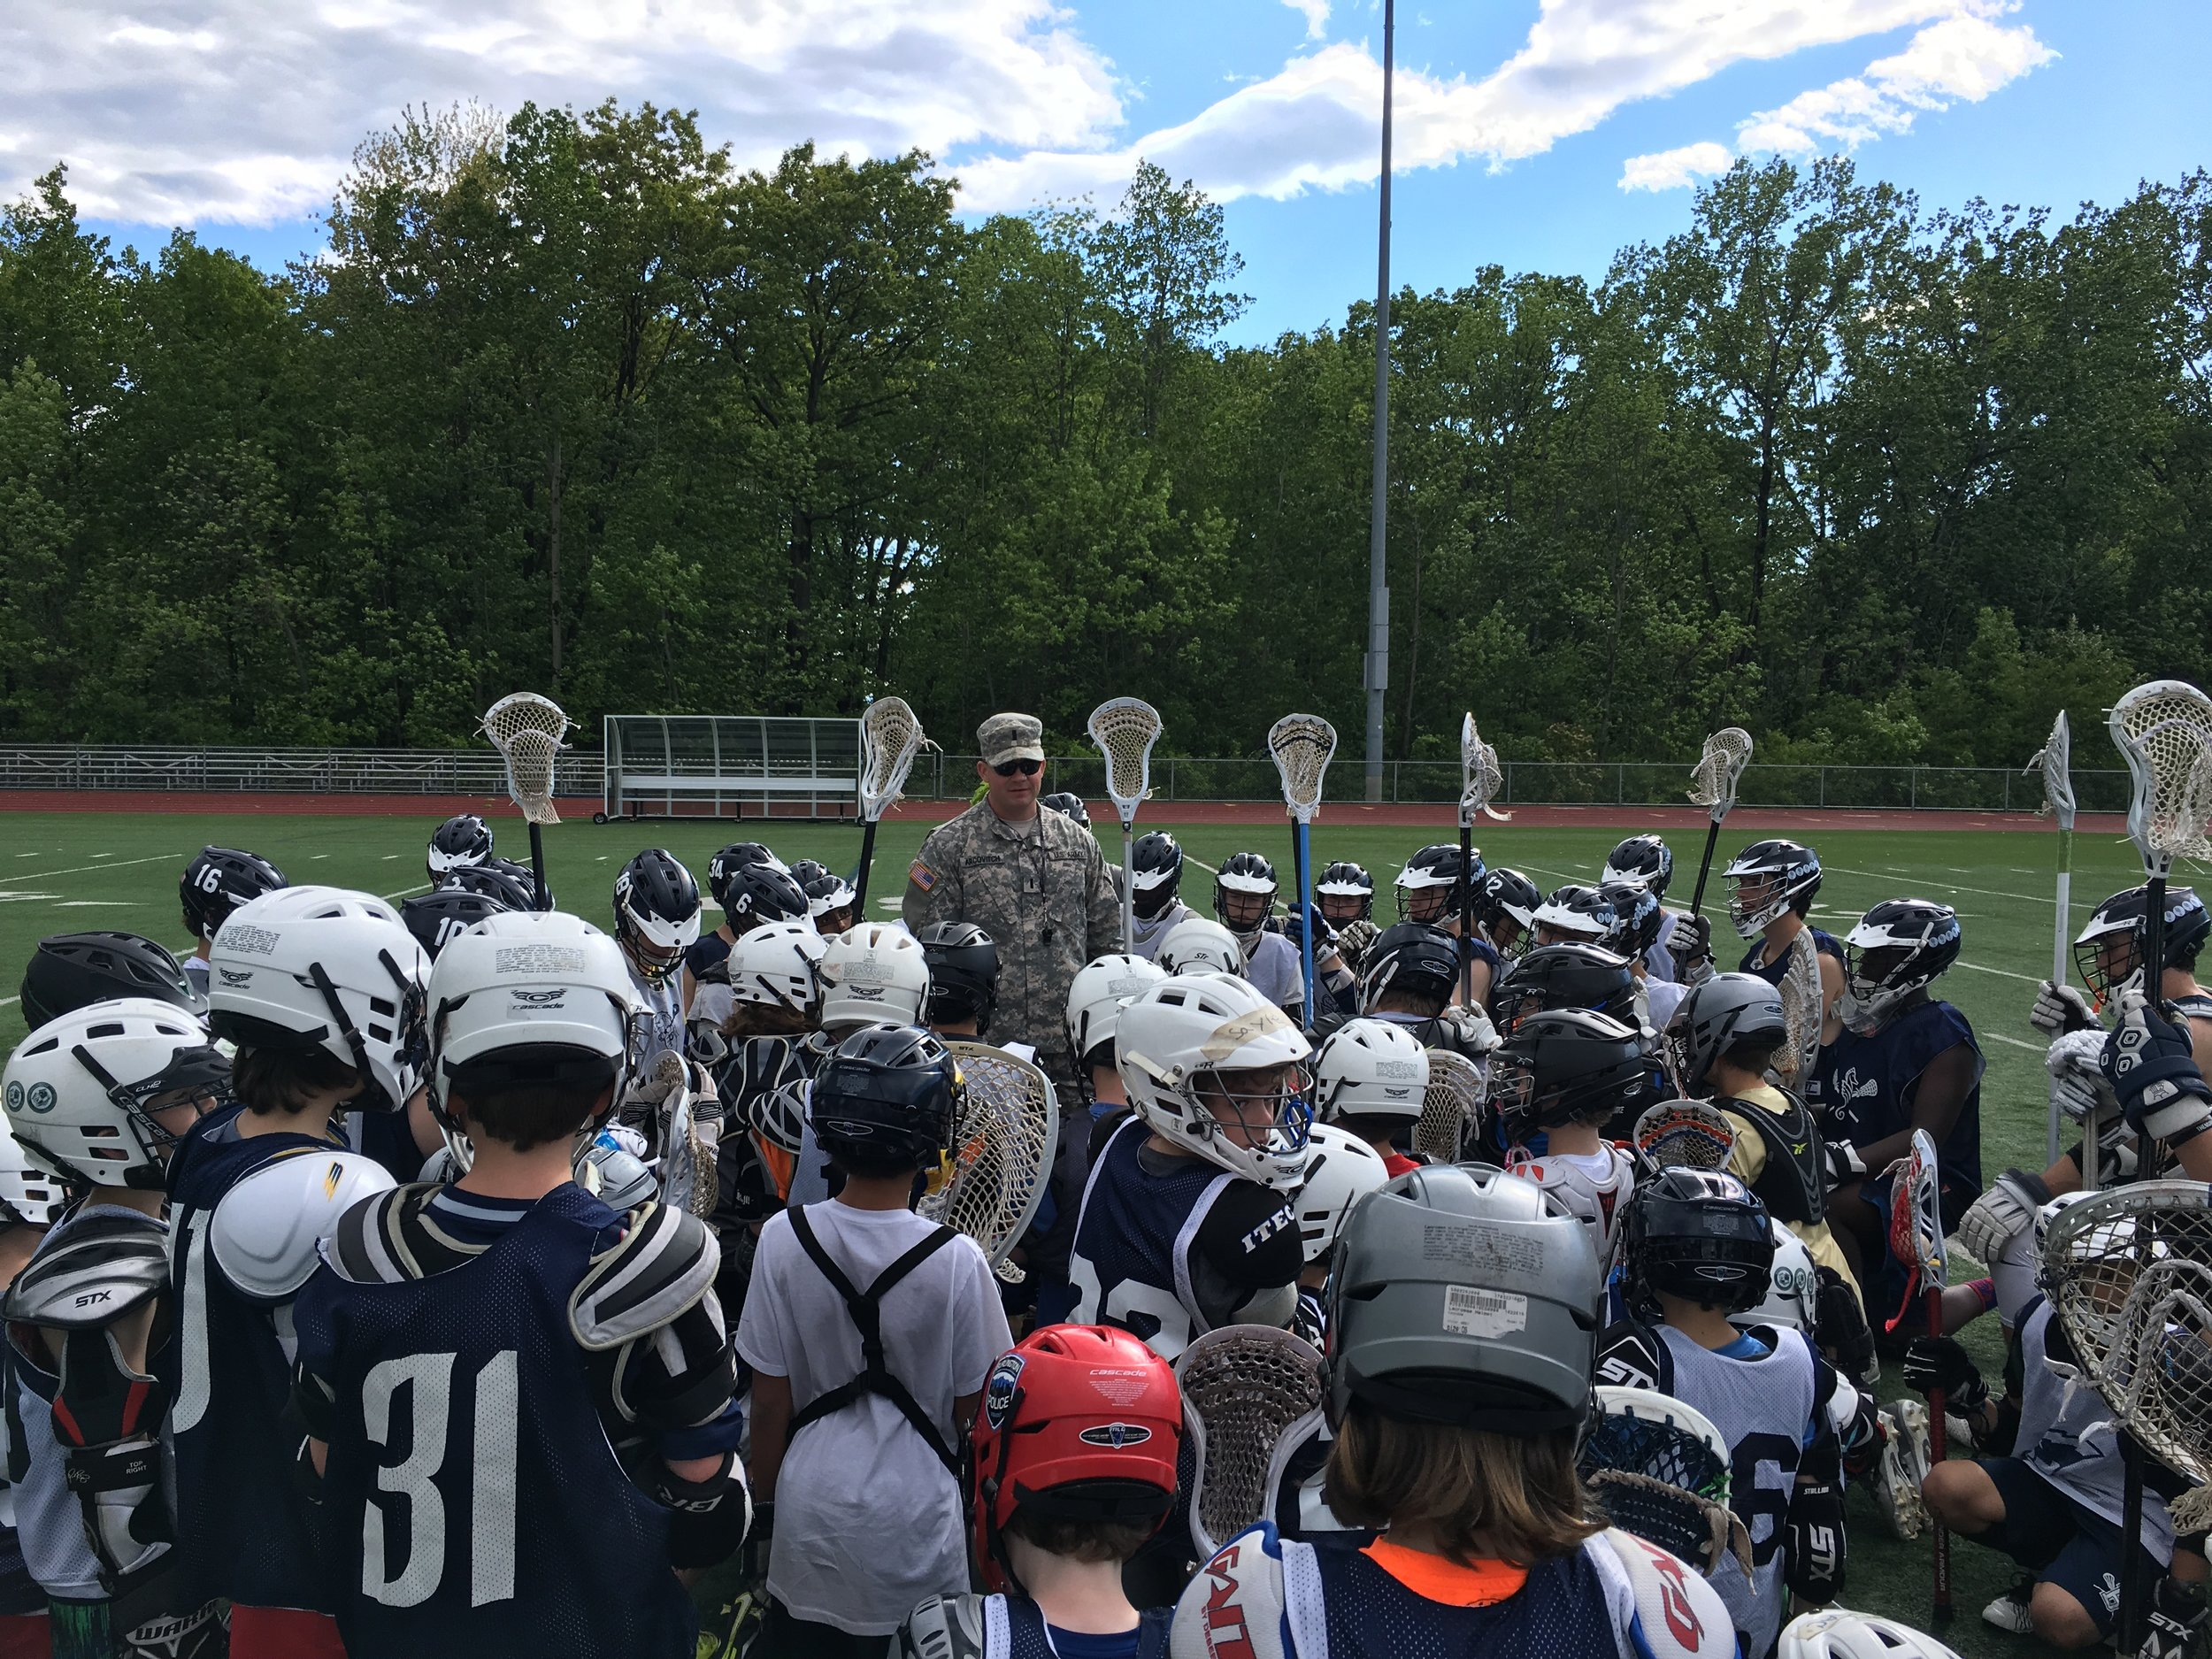 Coach Arco of the BHS Varsity Team speaking to our boys May 31, 2016